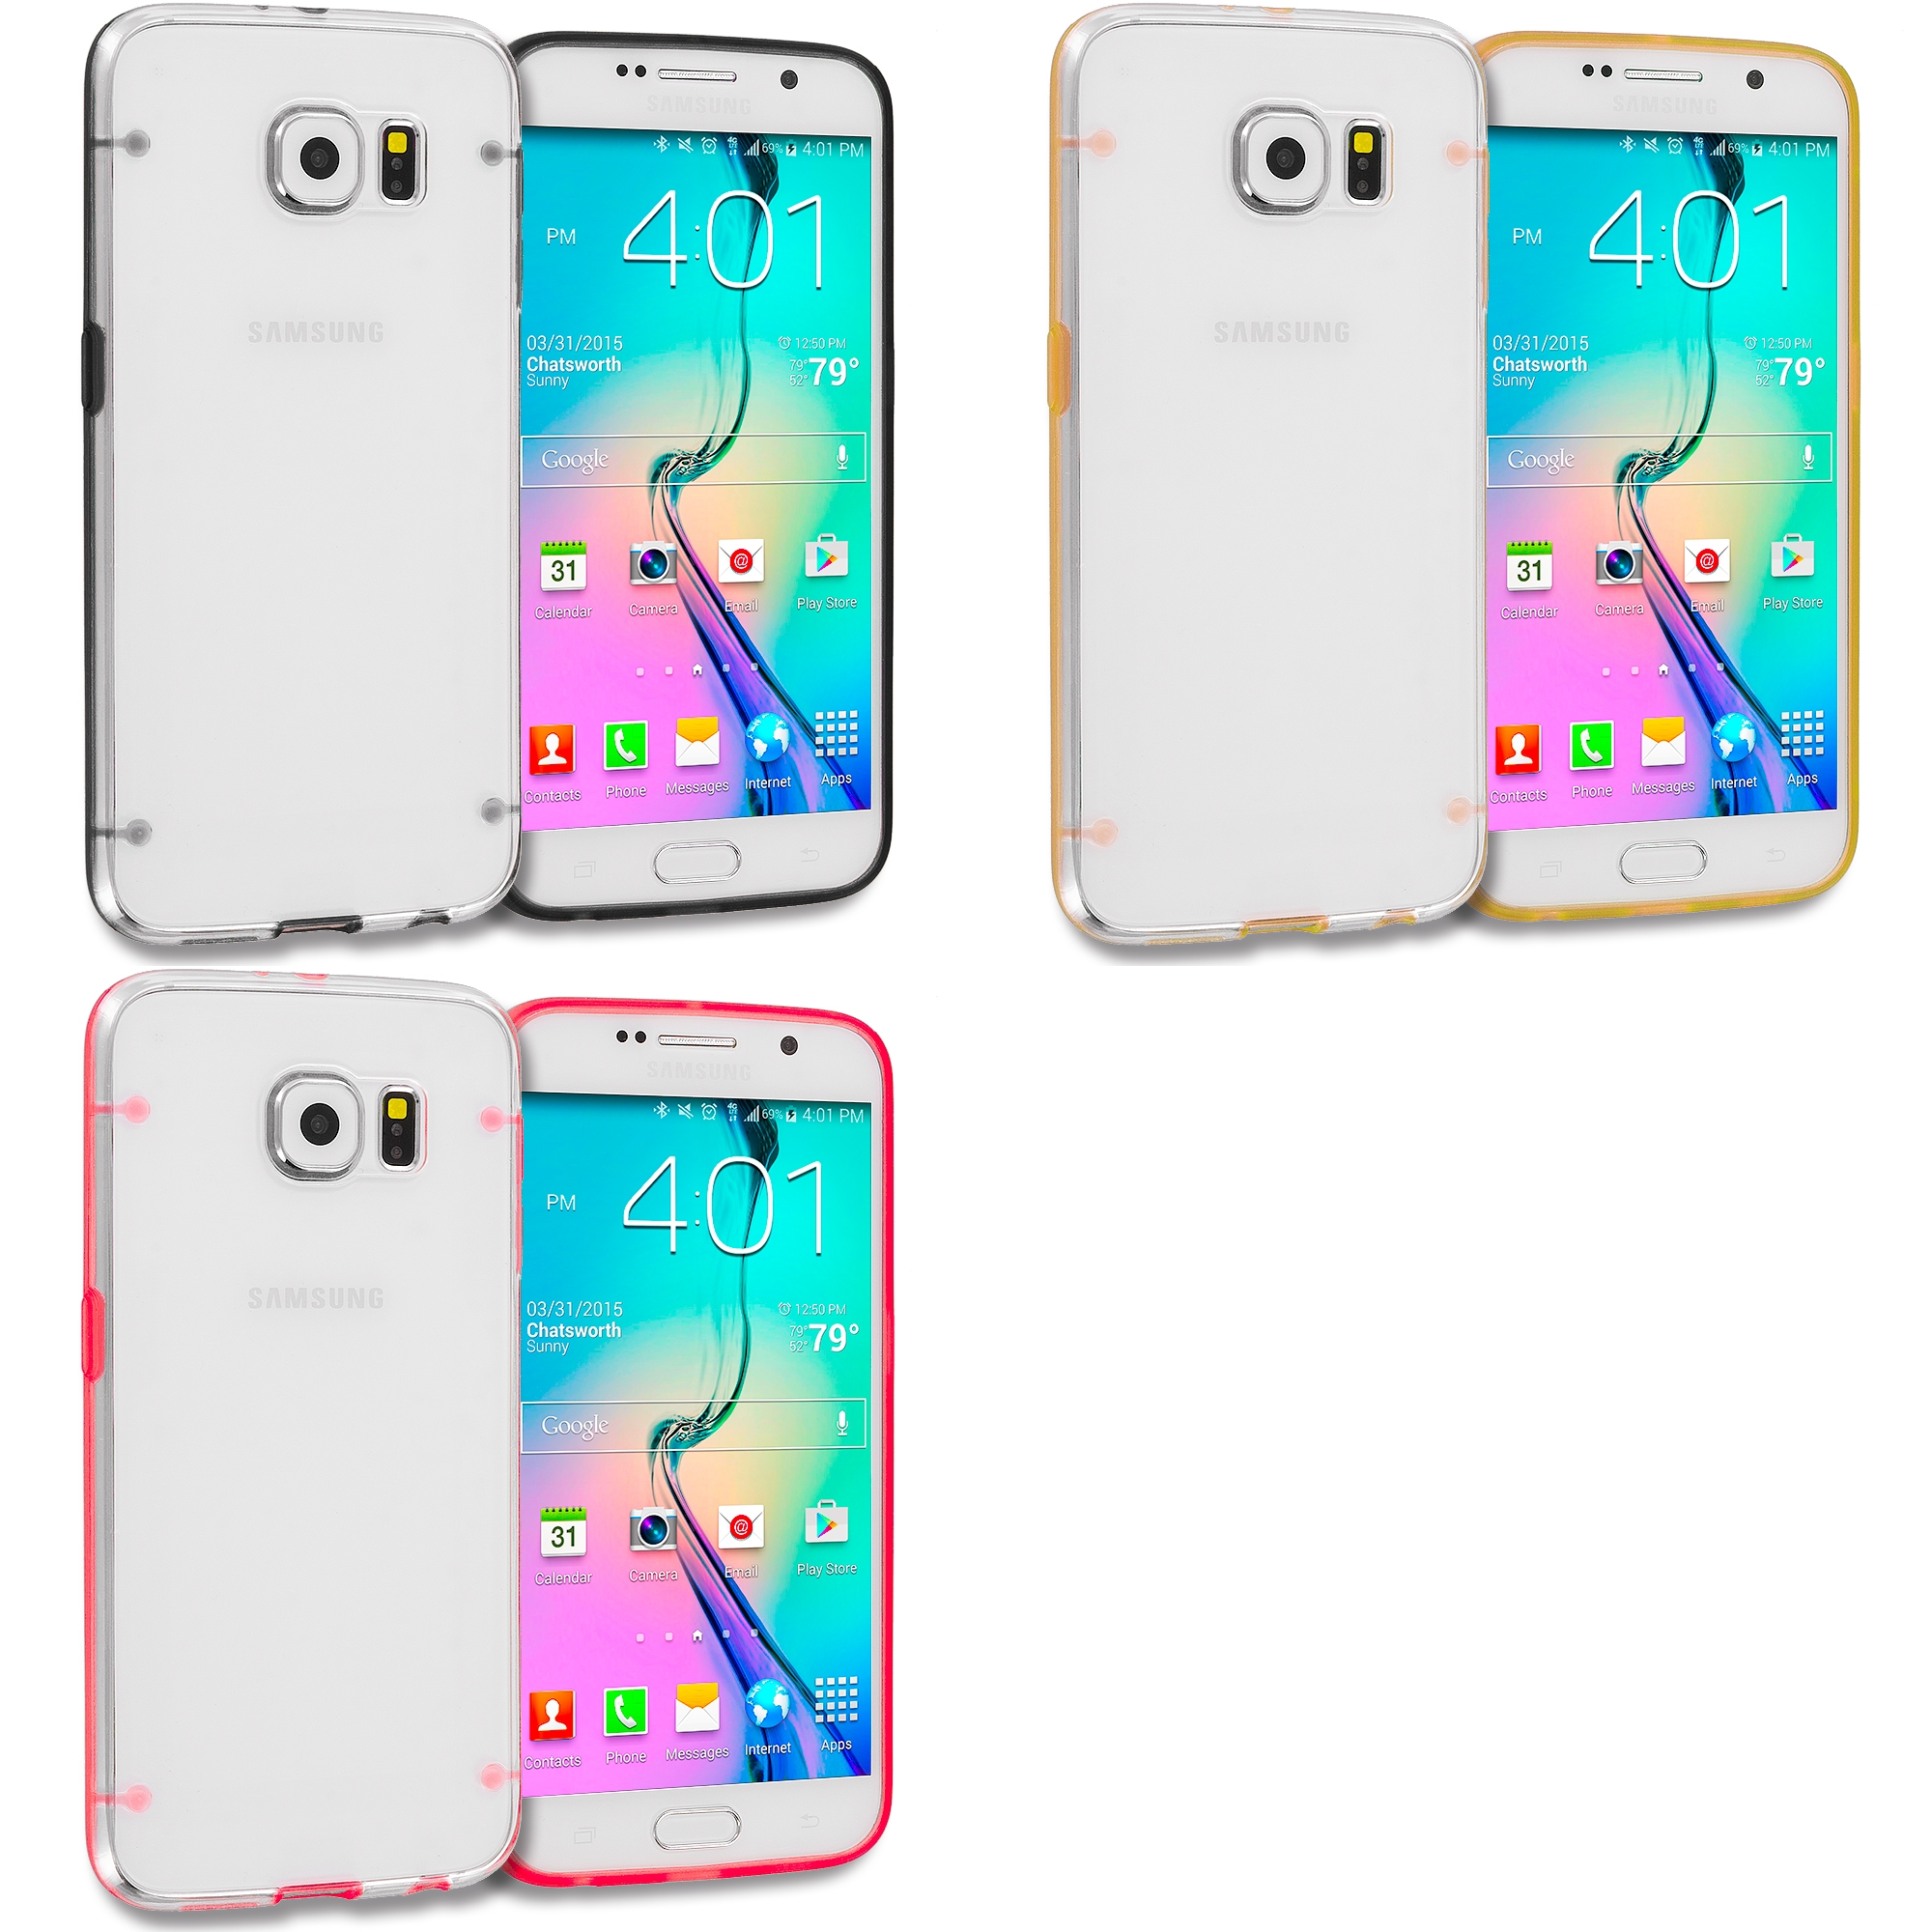 Samsung Galaxy S6 3 in 1 Combo Bundle Pack - Crystal Robot Hard TPU Case Cover